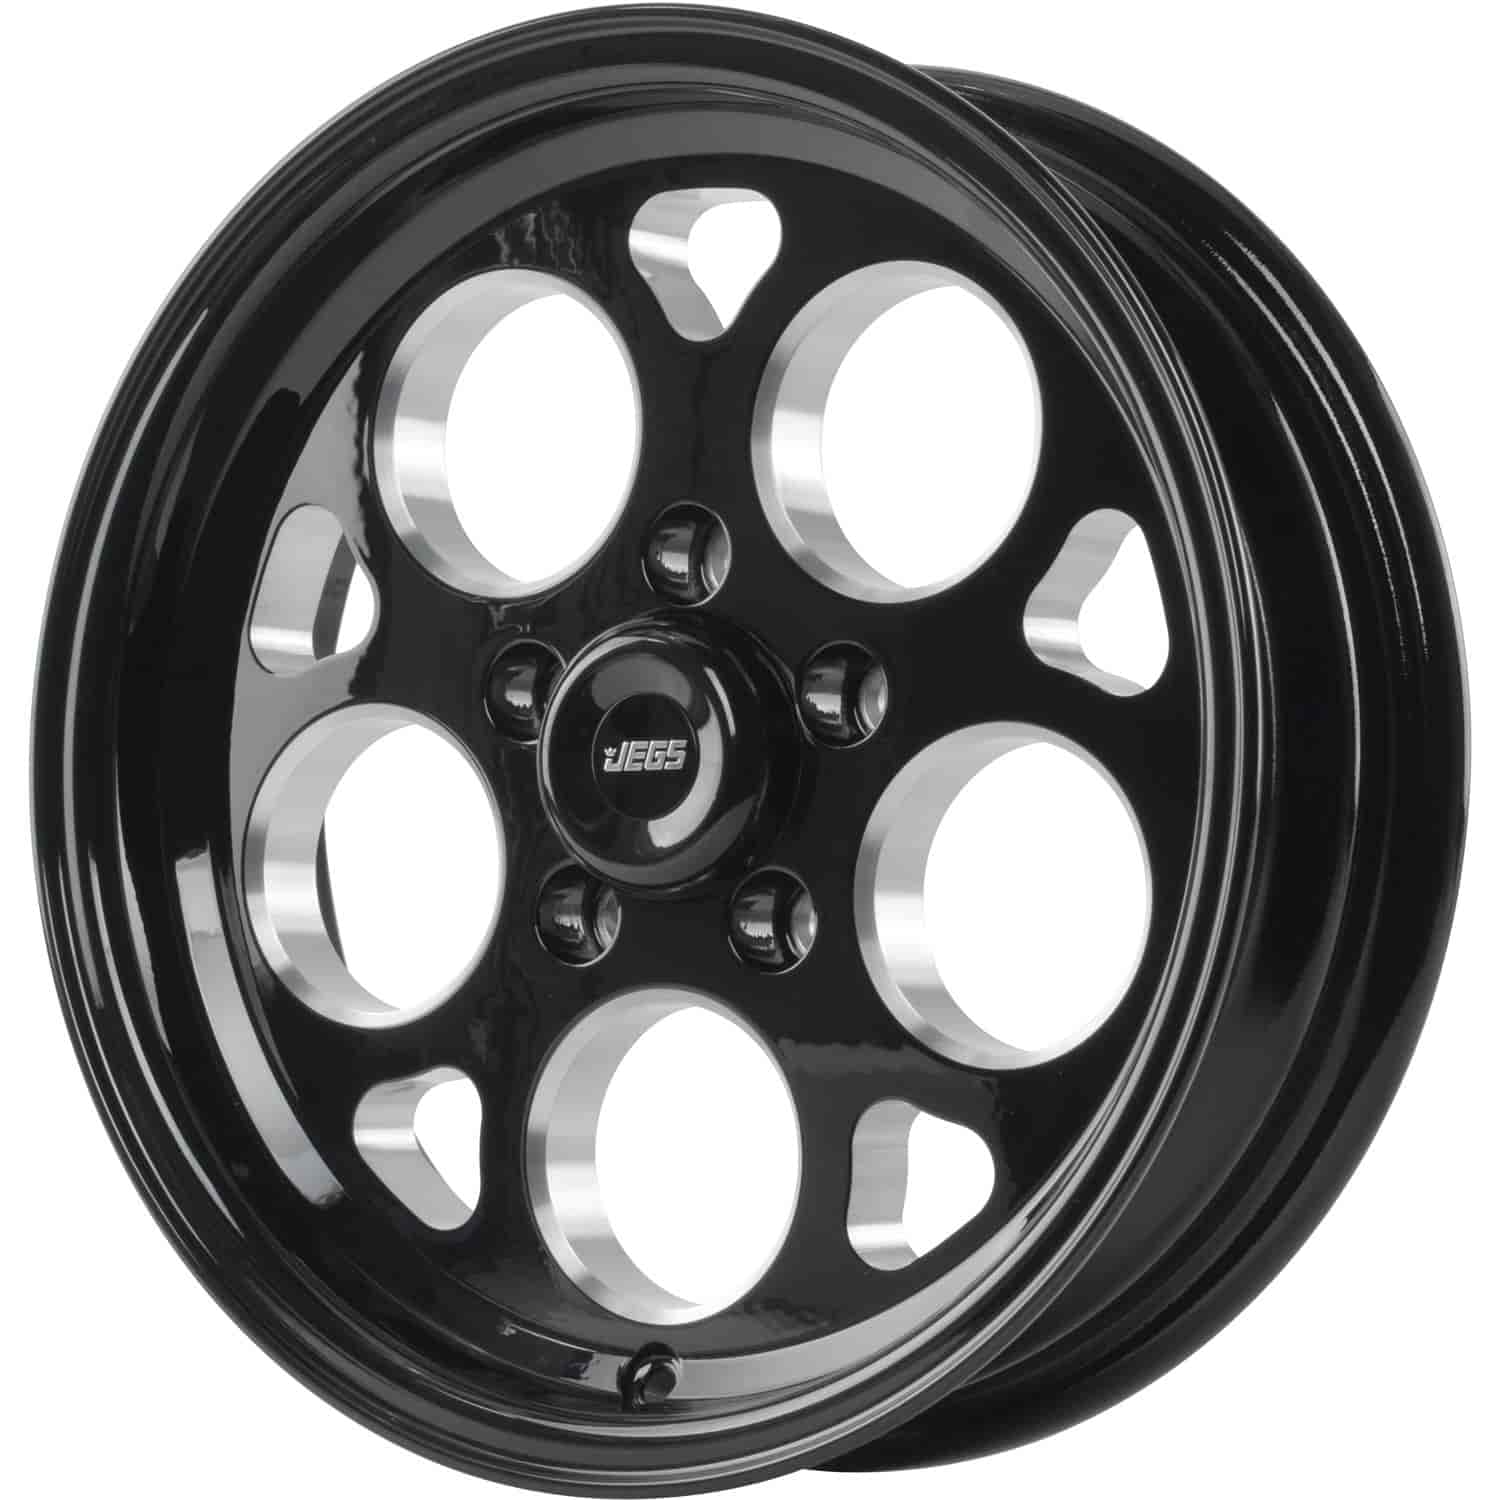 Where can you order JEGS Wheels?